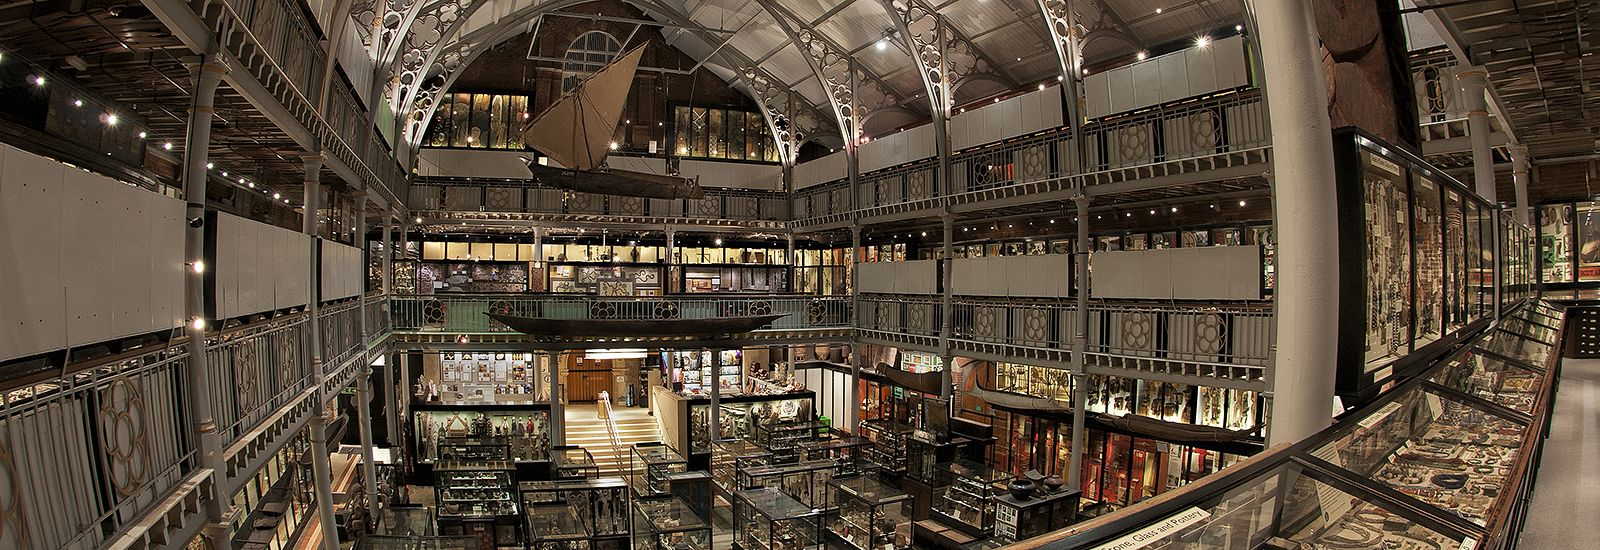 Wide shot of inside the Pitt Rivers Museum